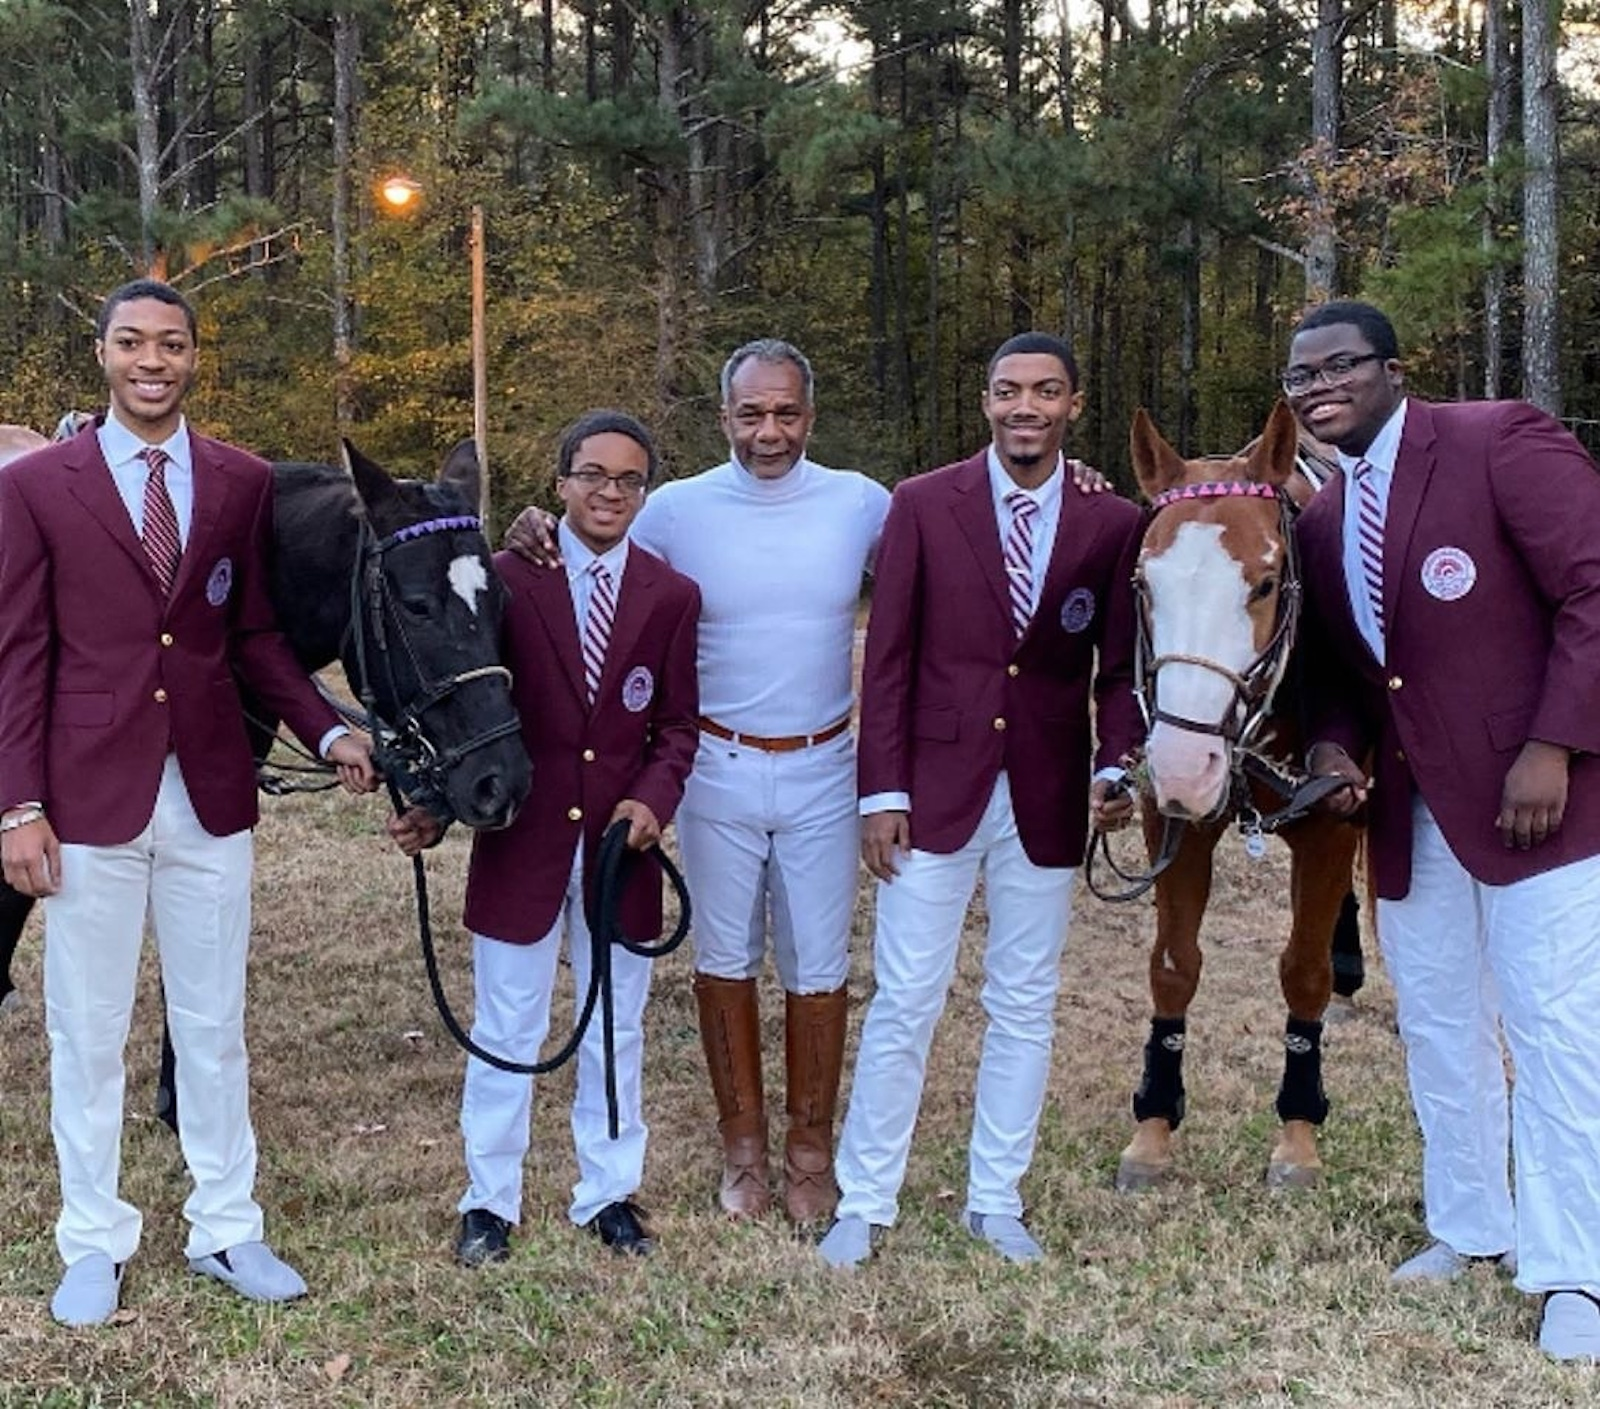 Morehouse Polo Team, HBCU, Historically Black Colleges & Universities, Black Colleges, African American Education, KOLUMN Magazine, KOLUMN, KINDR'D Magazine, KINDR'D, Willoughby Avenue, Wriit,